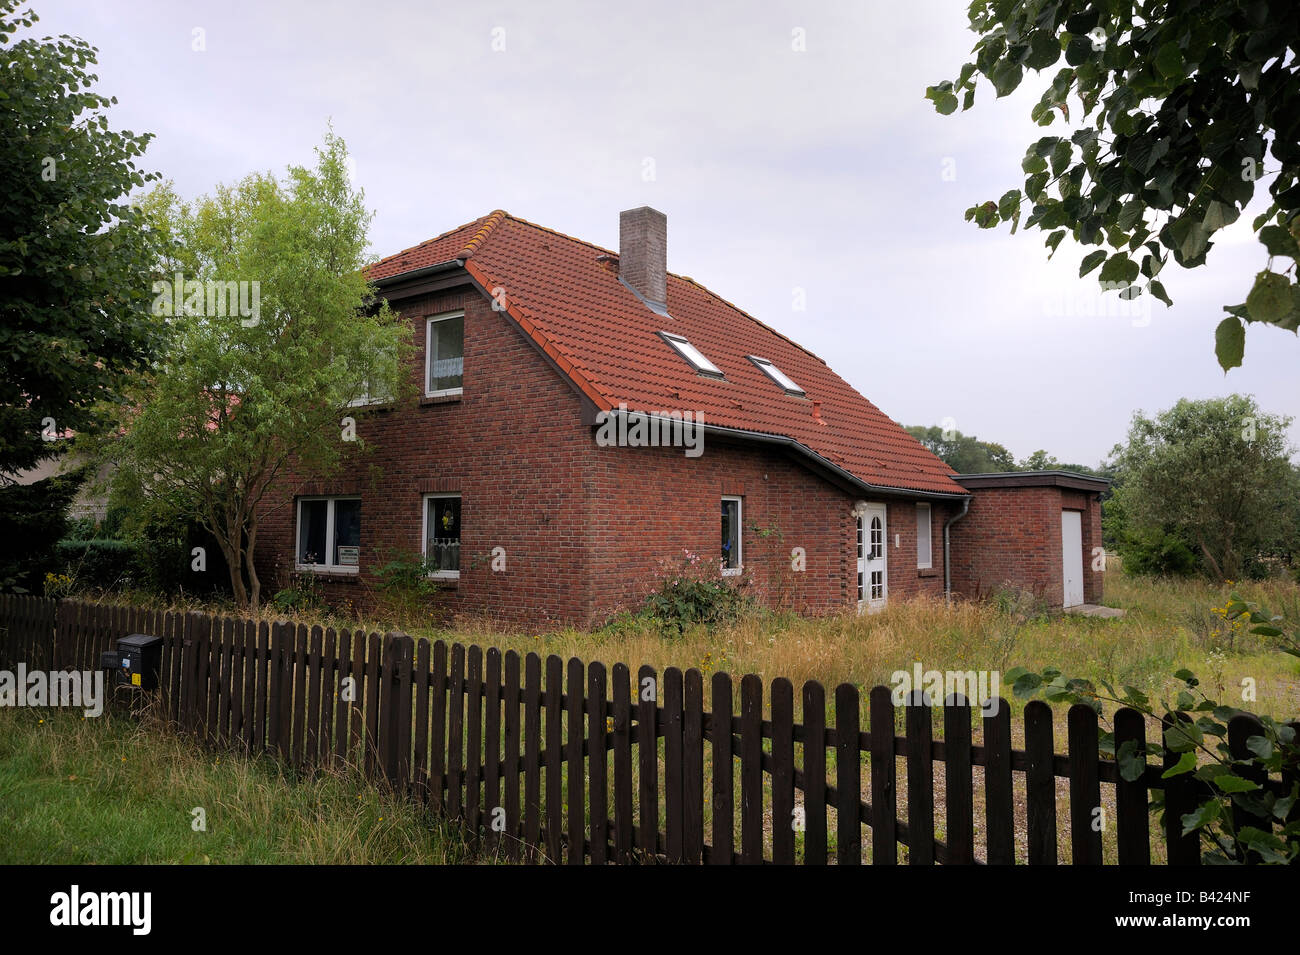 a house to be put up for compulsory sale in Mecklenburg-Western Pomerania, germany. Stock Photo